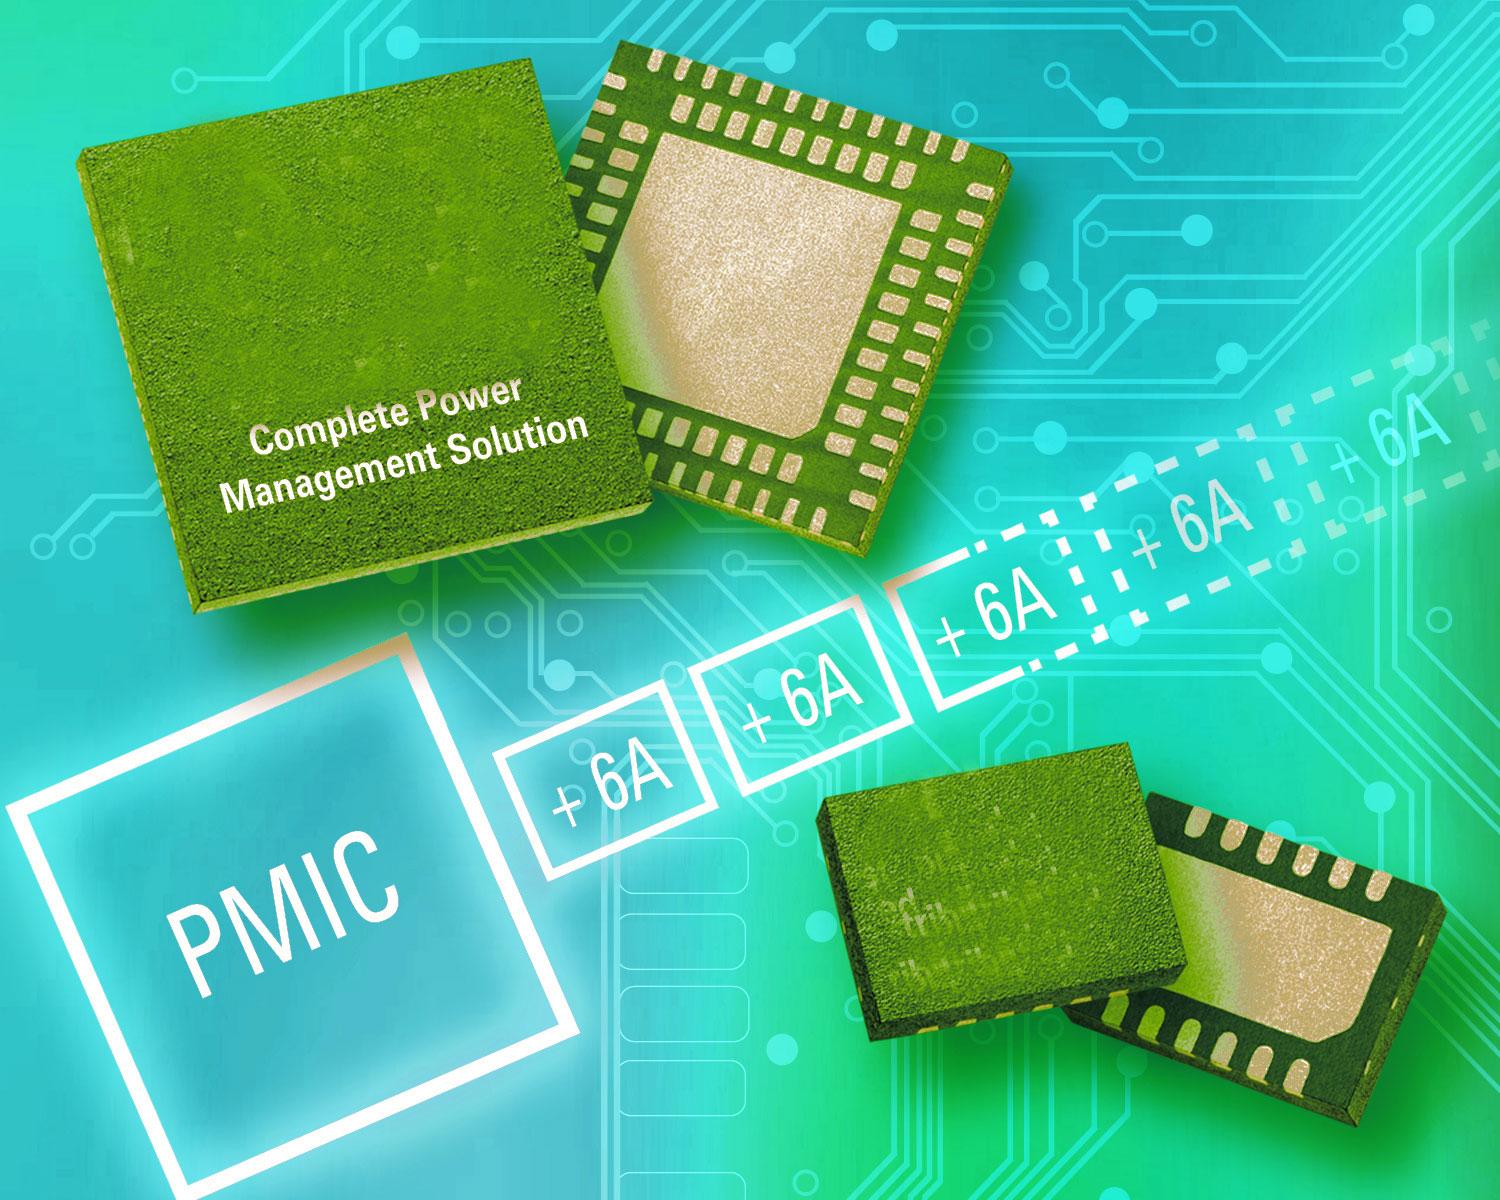 Global Power Management Integrated Circuit Market examines size, share, trends, technology innovation, growth, demand and forecast 2026:  Analog Devices (U.S.), Texas Instruments (U.S.), Semiconductor (U.S.), Dialog Semiconductor (UK)